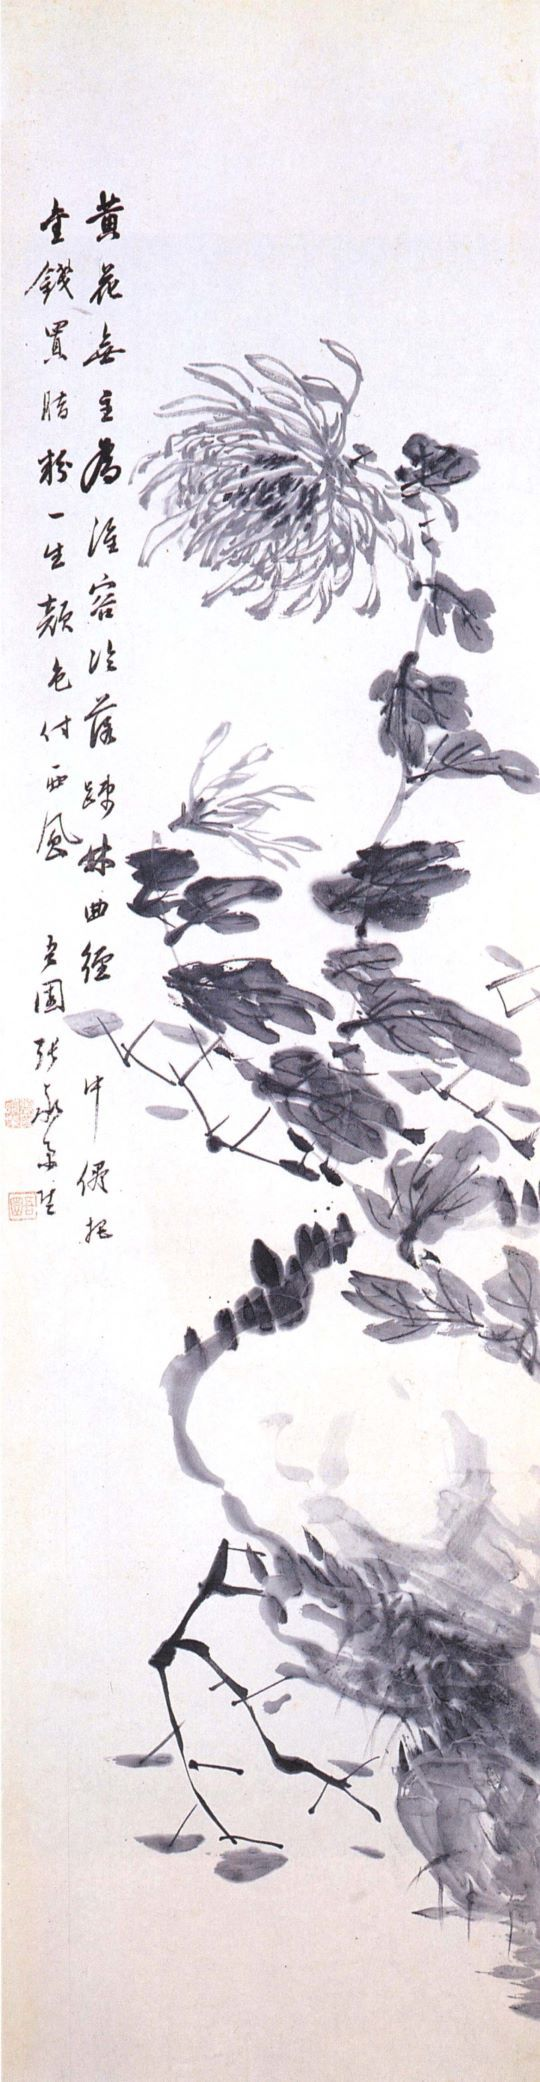 (Korea) Chrythethum of the Four Gentlemen by Jang Seung-eop (1843- 1897). ink on hanji.